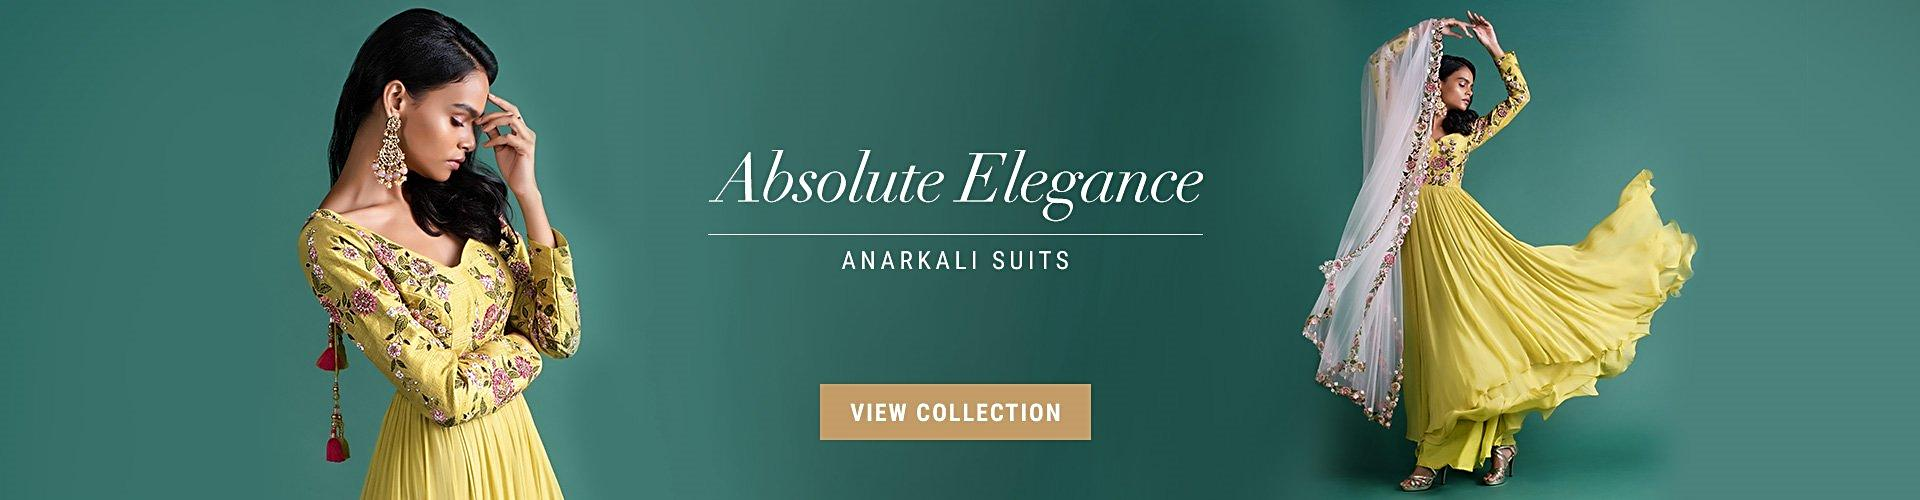 Anarkali Suits Collection